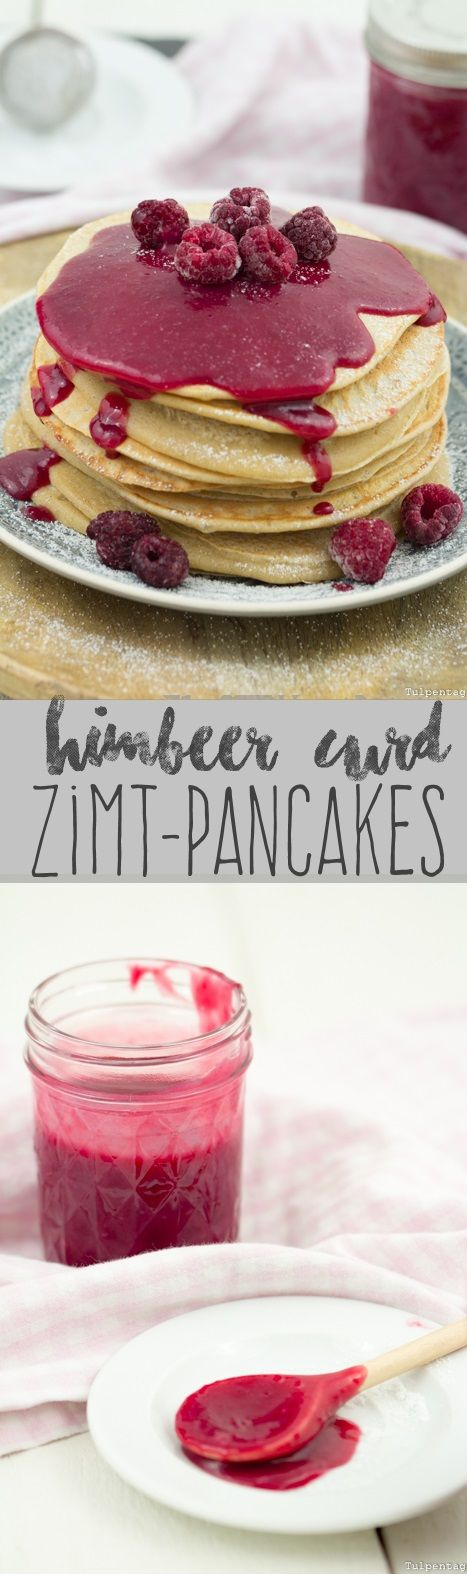 himbeer curd auf zimt pancakes rezepte pinterest pfannkuchen himbeeren und zimt. Black Bedroom Furniture Sets. Home Design Ideas